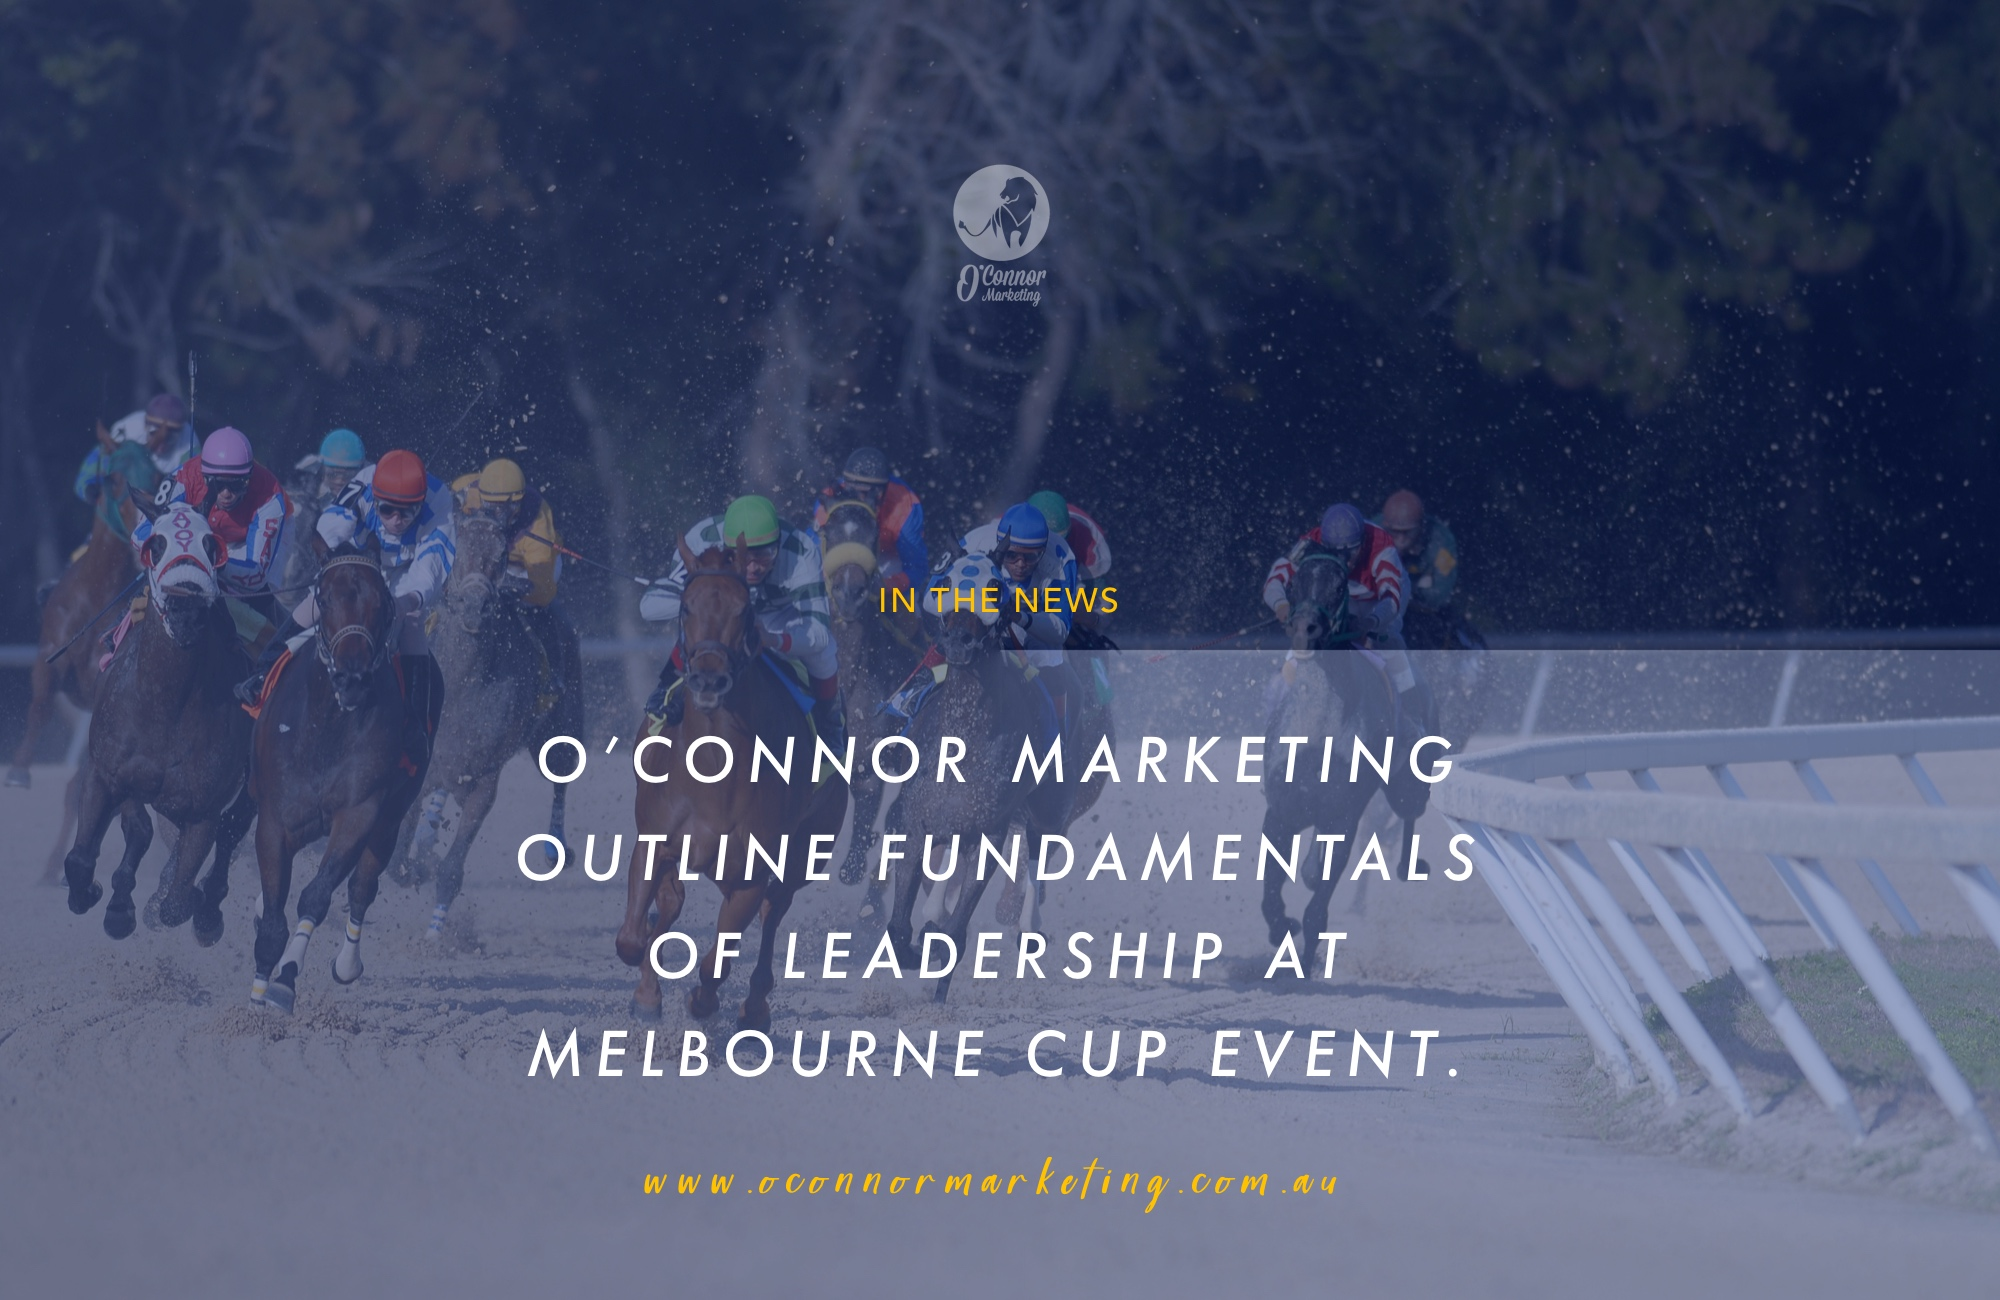 O'Connor Marketing outline fundamentals of leadership at Melbourne Cup event.